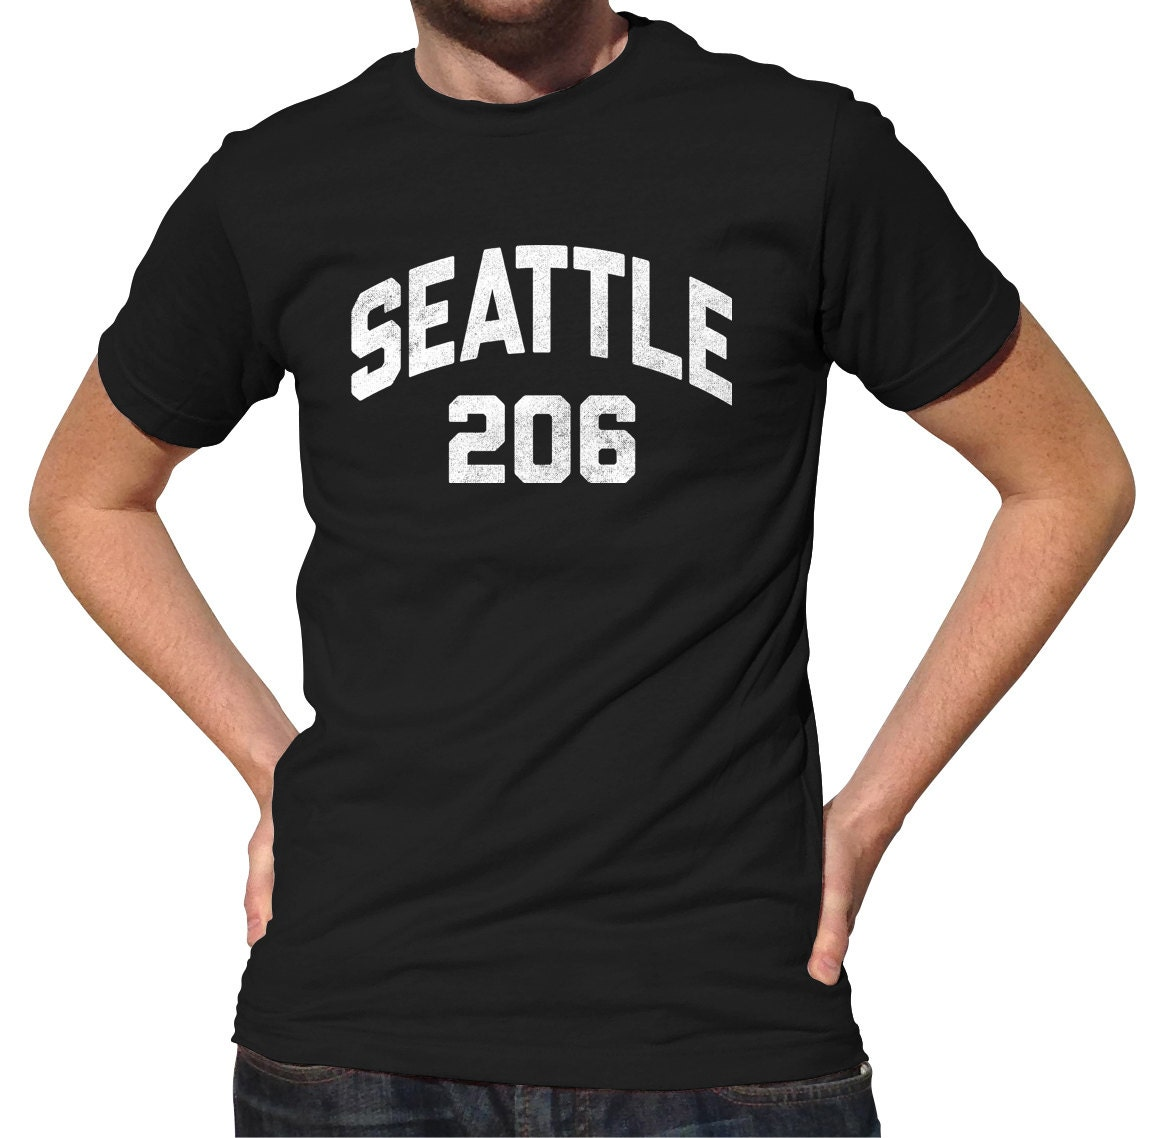 seattle 206 vorwahl t shirt retro washington state tshirt etsy. Black Bedroom Furniture Sets. Home Design Ideas